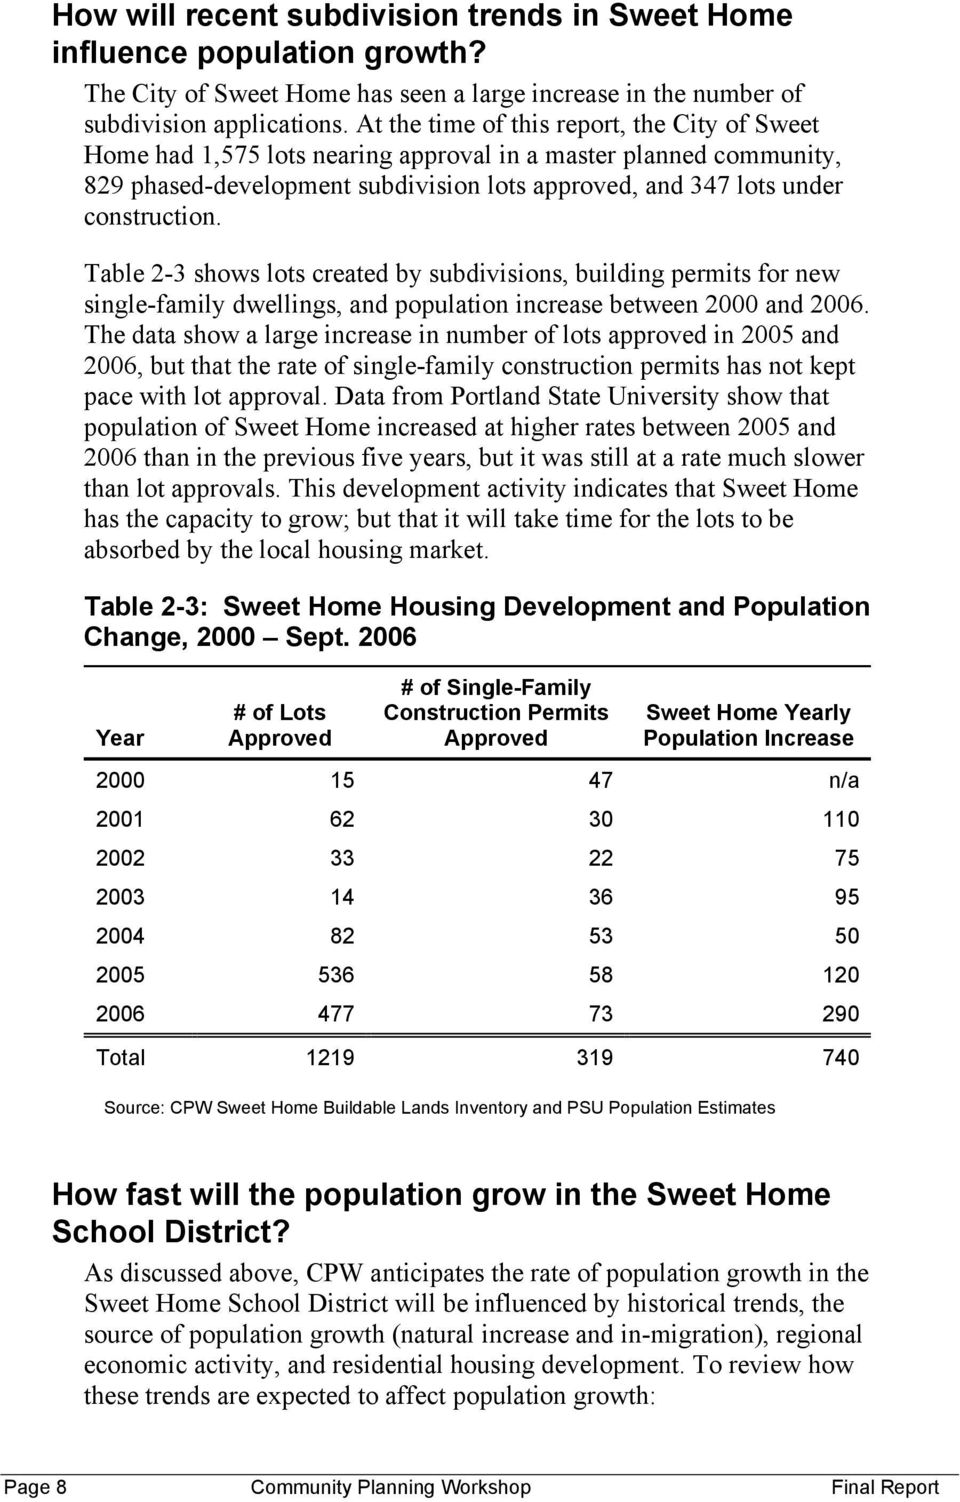 Table 2-3 shows lots created by subdivisions, building permits for new single-family dwellings, and population increase between 2000 and 2006.